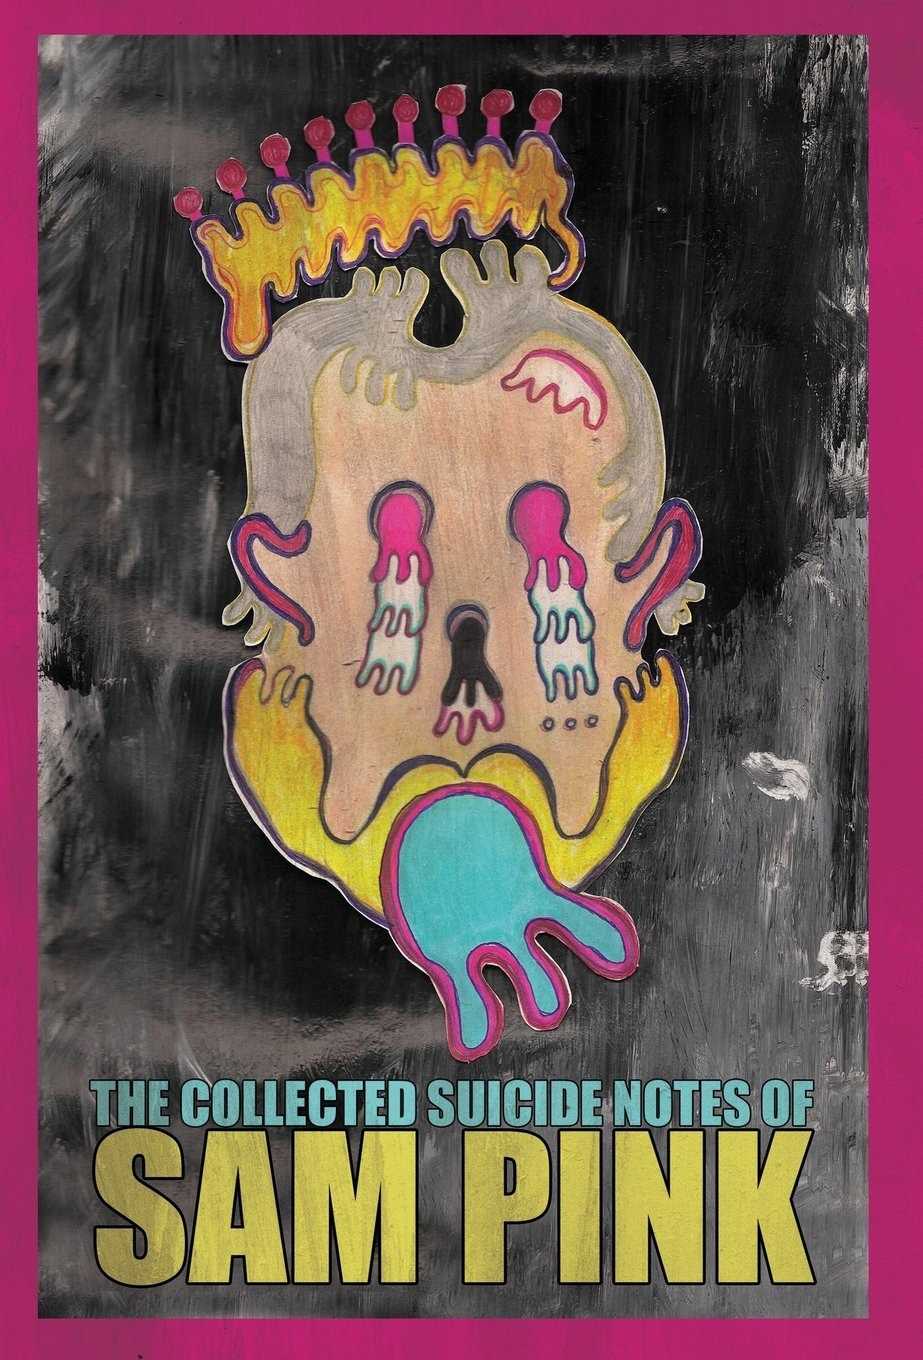 The Collected Suicide Notes of Sam Pink